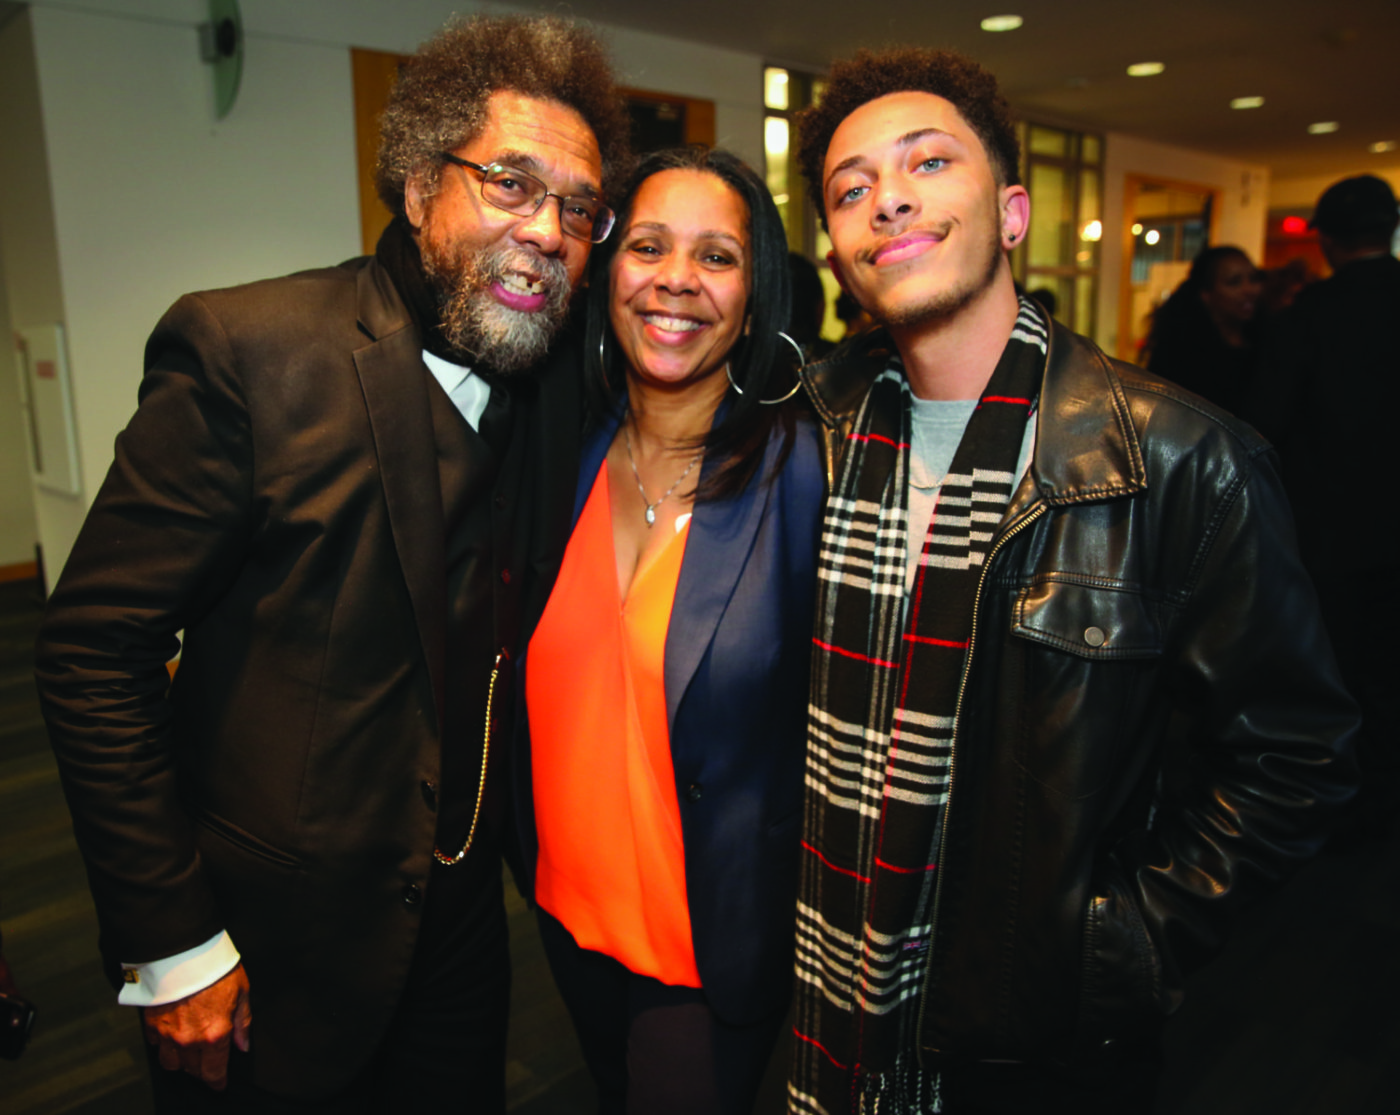 Dr.-Cornel-West-HRC-ED-Sheryl-Evans-Davis-her-son-Henry-Lee-Davis-III-USC-student-at-HRC-25th-Anniv-Evening-with-Dr.-Cornel-West-042718-by-Don-Bowden-1400x1115, Sheryl Davis of the Human Rights Commission: Showing love to San Francisco through service, Local News & Views